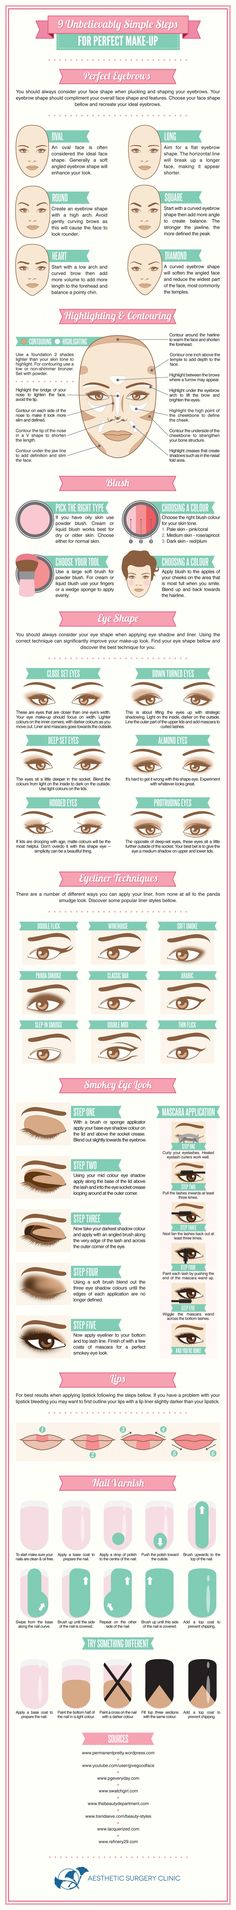 9 Unbelievably Simple Steps For Perfect Make-Up - Some of it is pretty basic, but definitely some solid advice here!